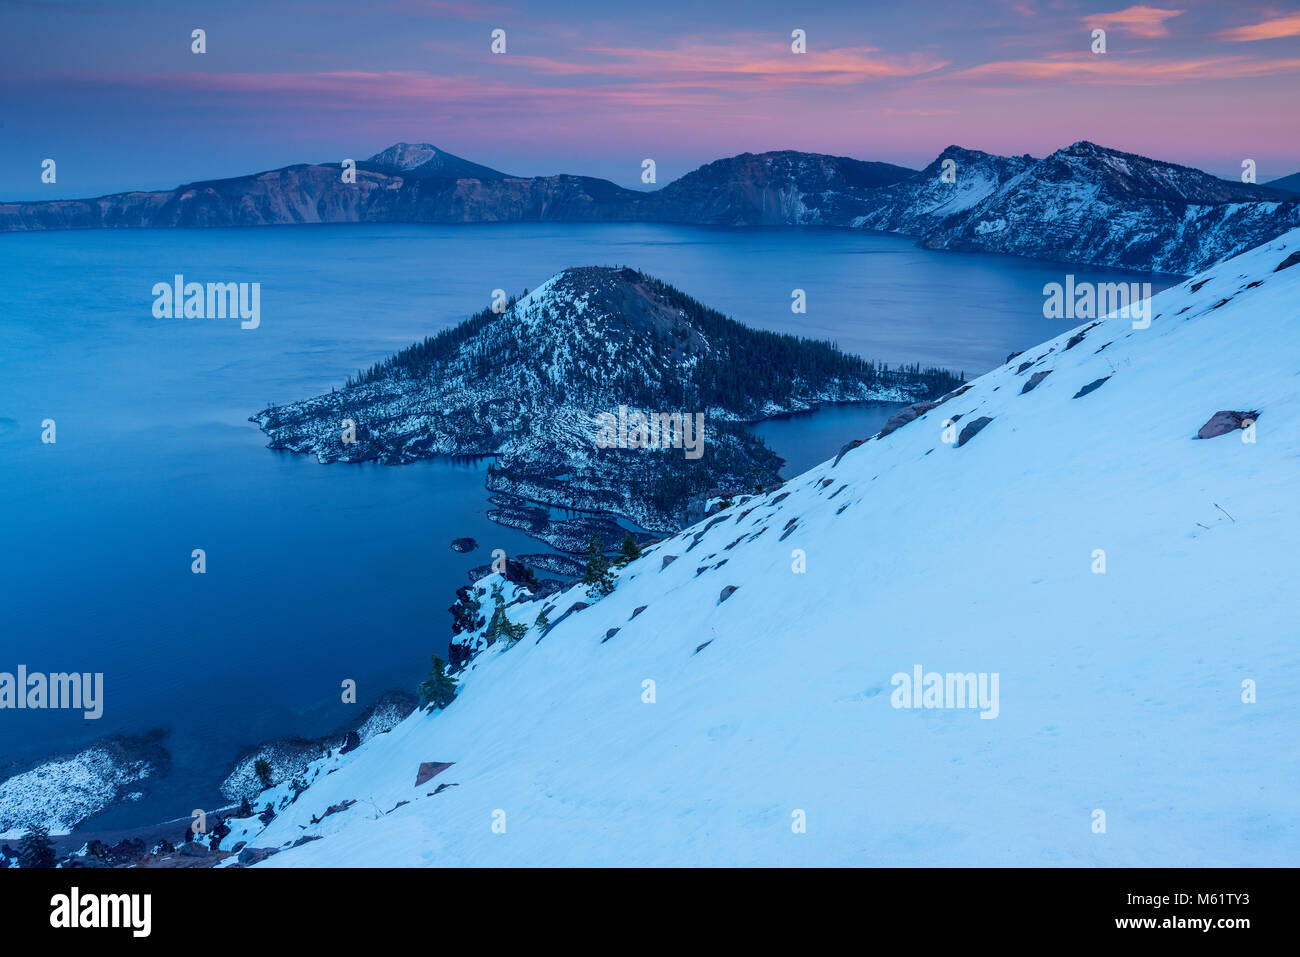 Dusk, Wizard Island, Crater Lake, Crater Lake National Park, Oregon - Stock Image